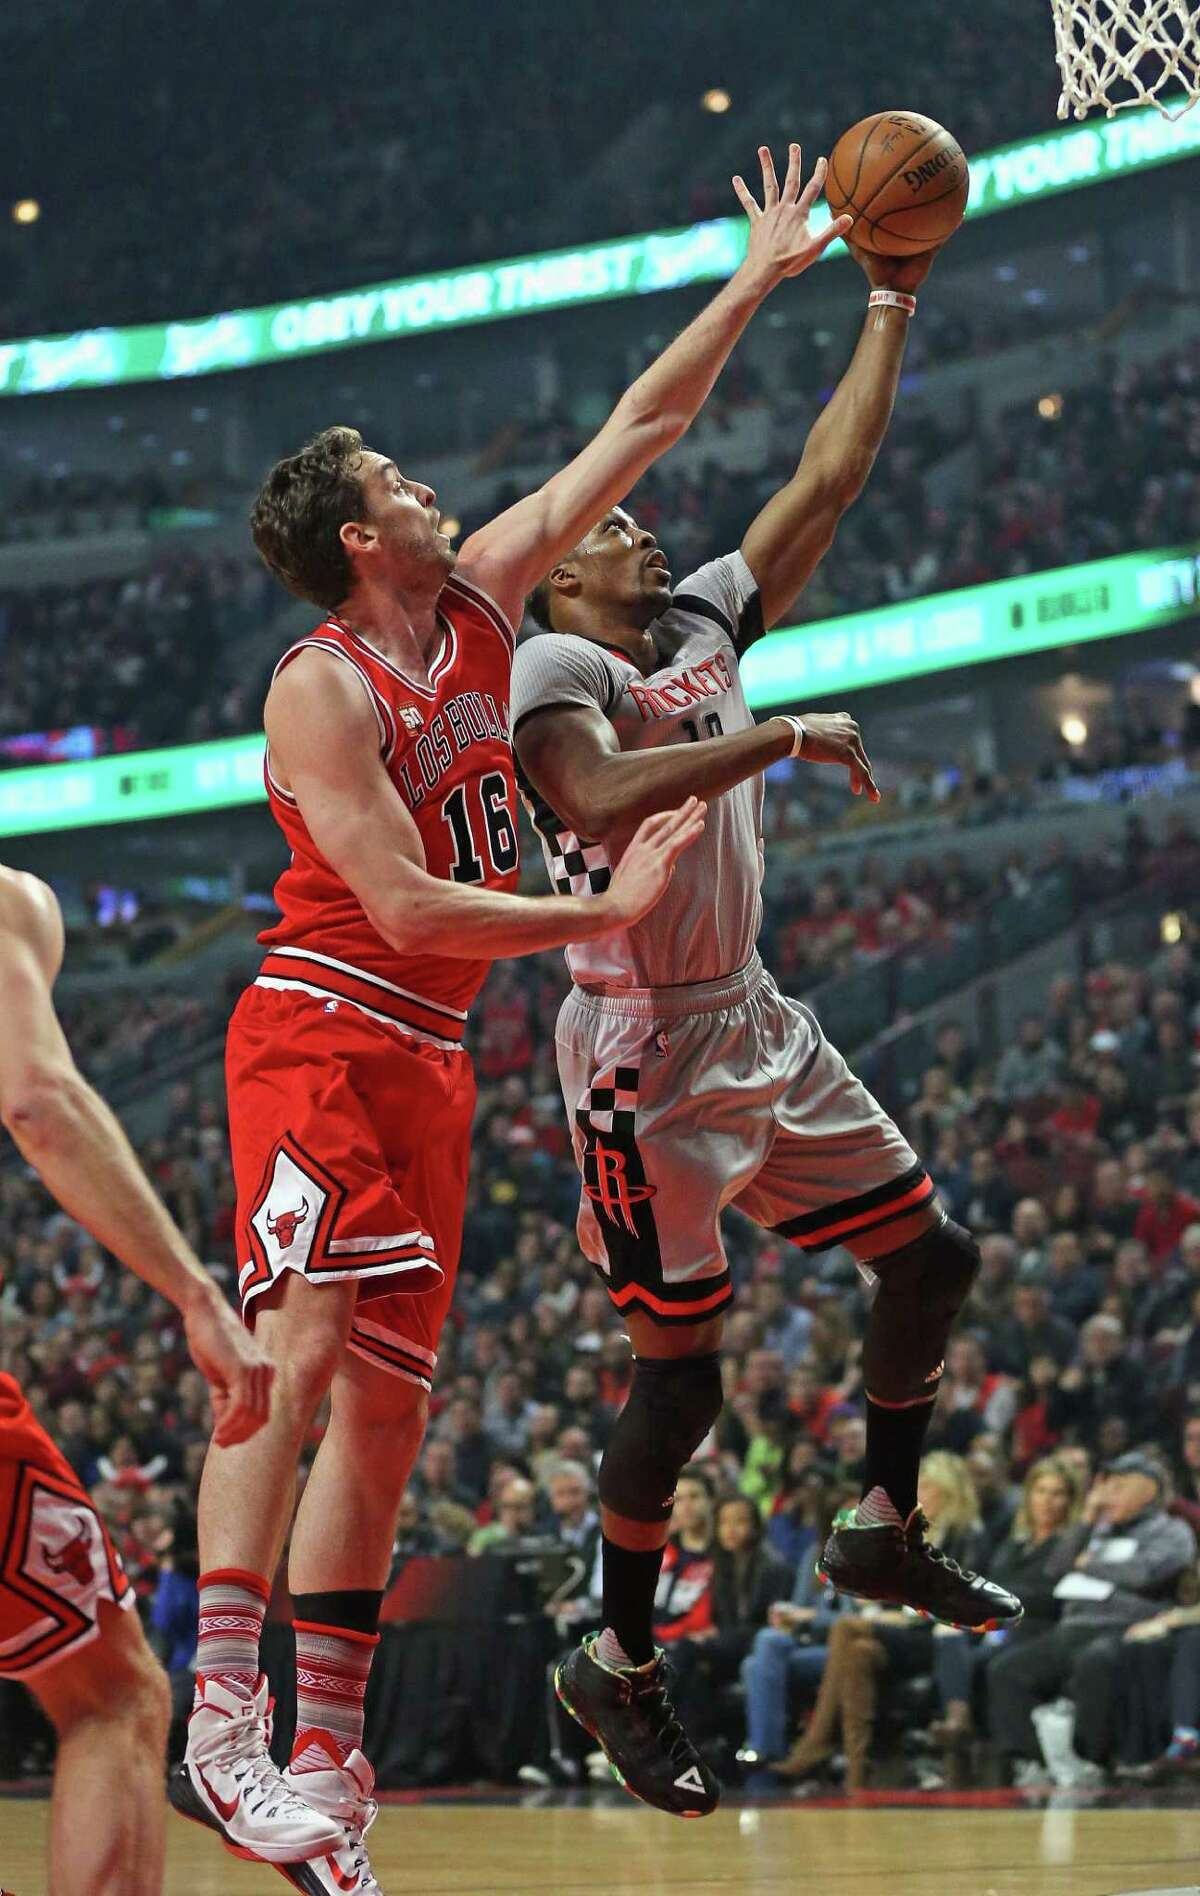 CHICAGO, IL - MARCH 05: Dwight Howard #12 of the Houston Rockets shoots against Pau Gasol #16 of the Chicago Bulls at the United Center on March 5, 2016 in Chicago, Illinois. NOTE TO USER: User expressly acknowledges and agrees that, by downloading and or using the photograph, User is consenting to the terms and conditions of the Getty Images License Agreement.